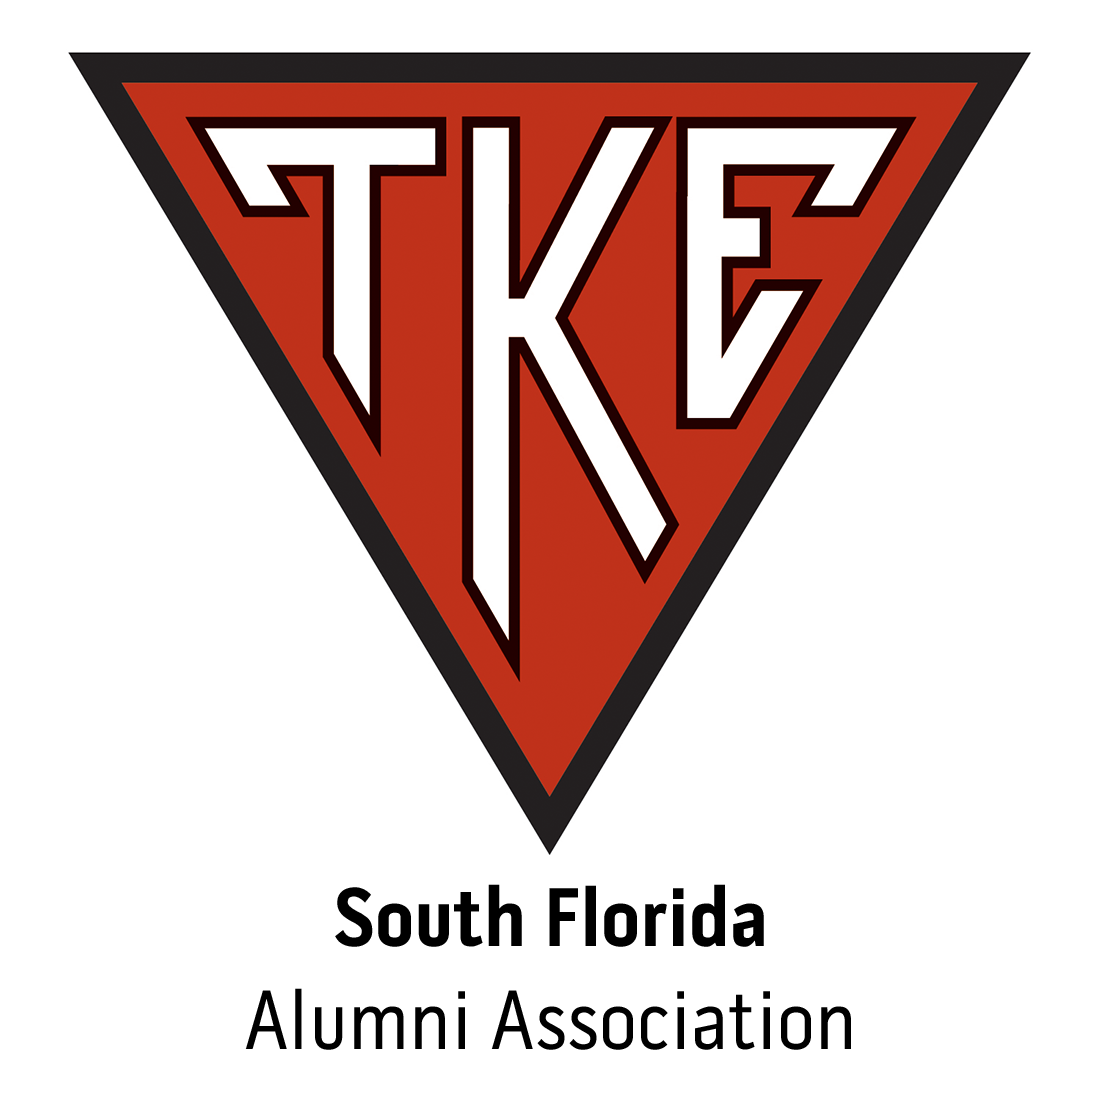 South Florida Alumni Association at Miami Area